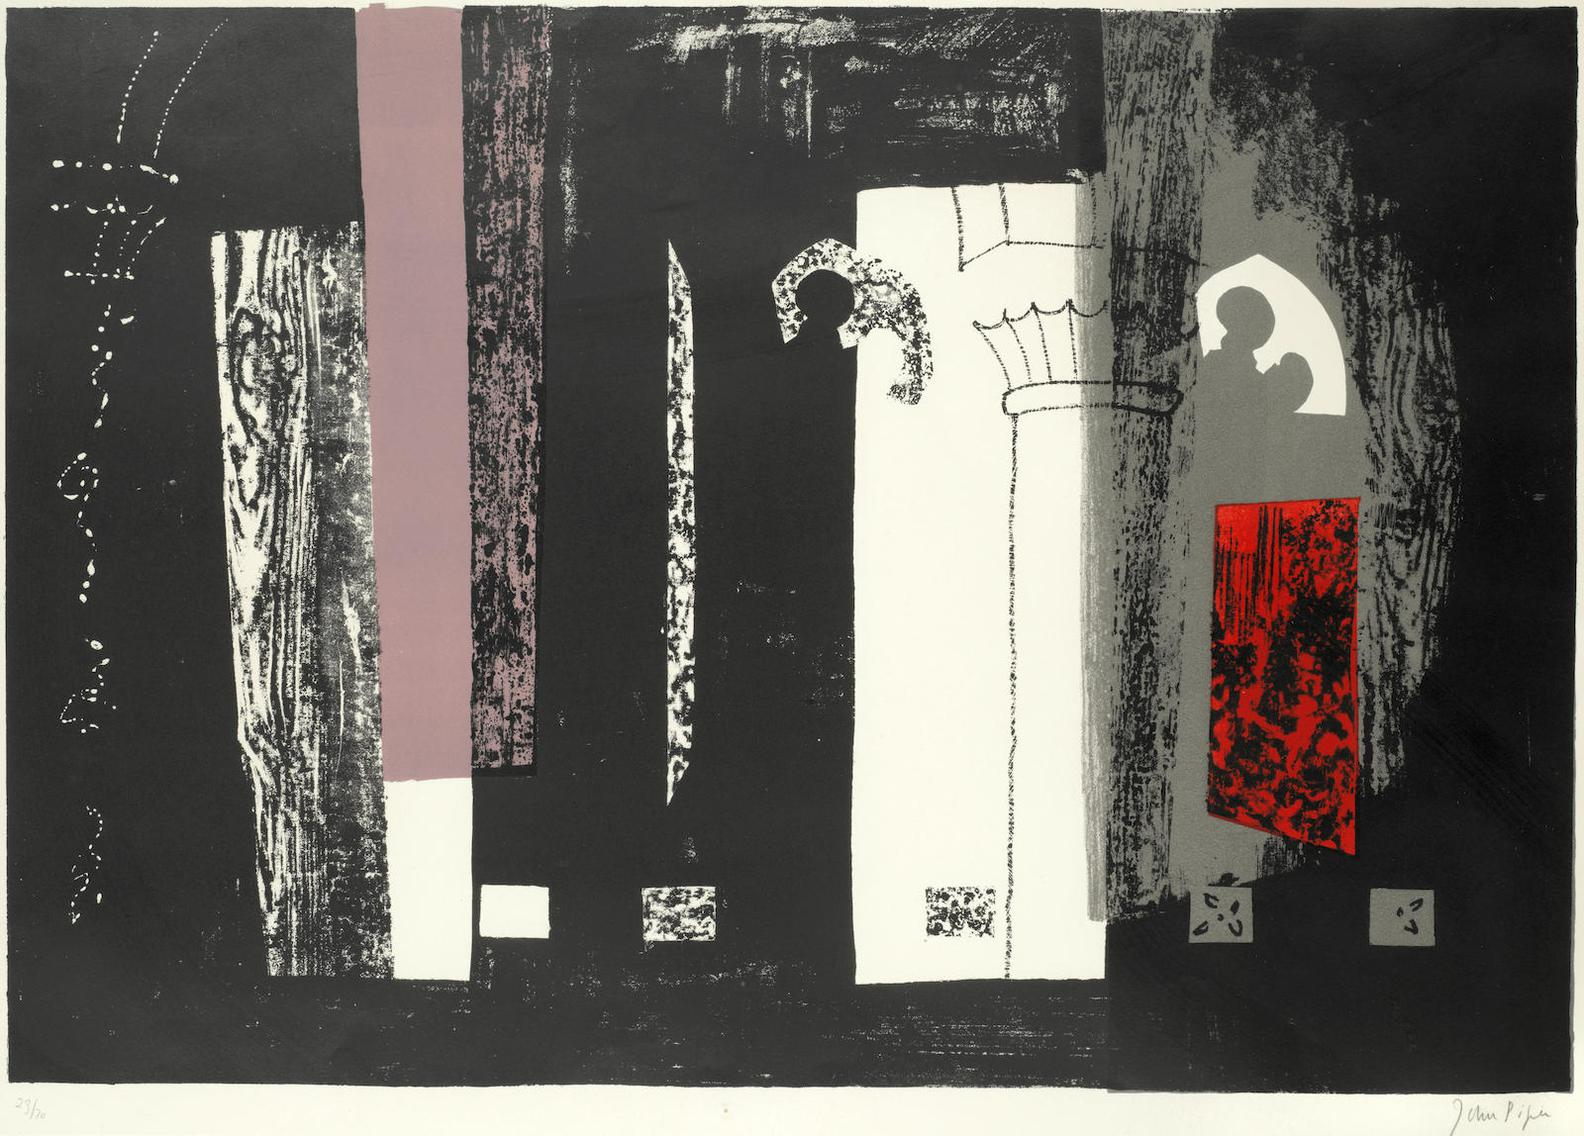 John Piper-Inglesham, Wiltshire: A Rustic Medieval Interior, From A Retrospect Of Churches (Levinson 132)-1964